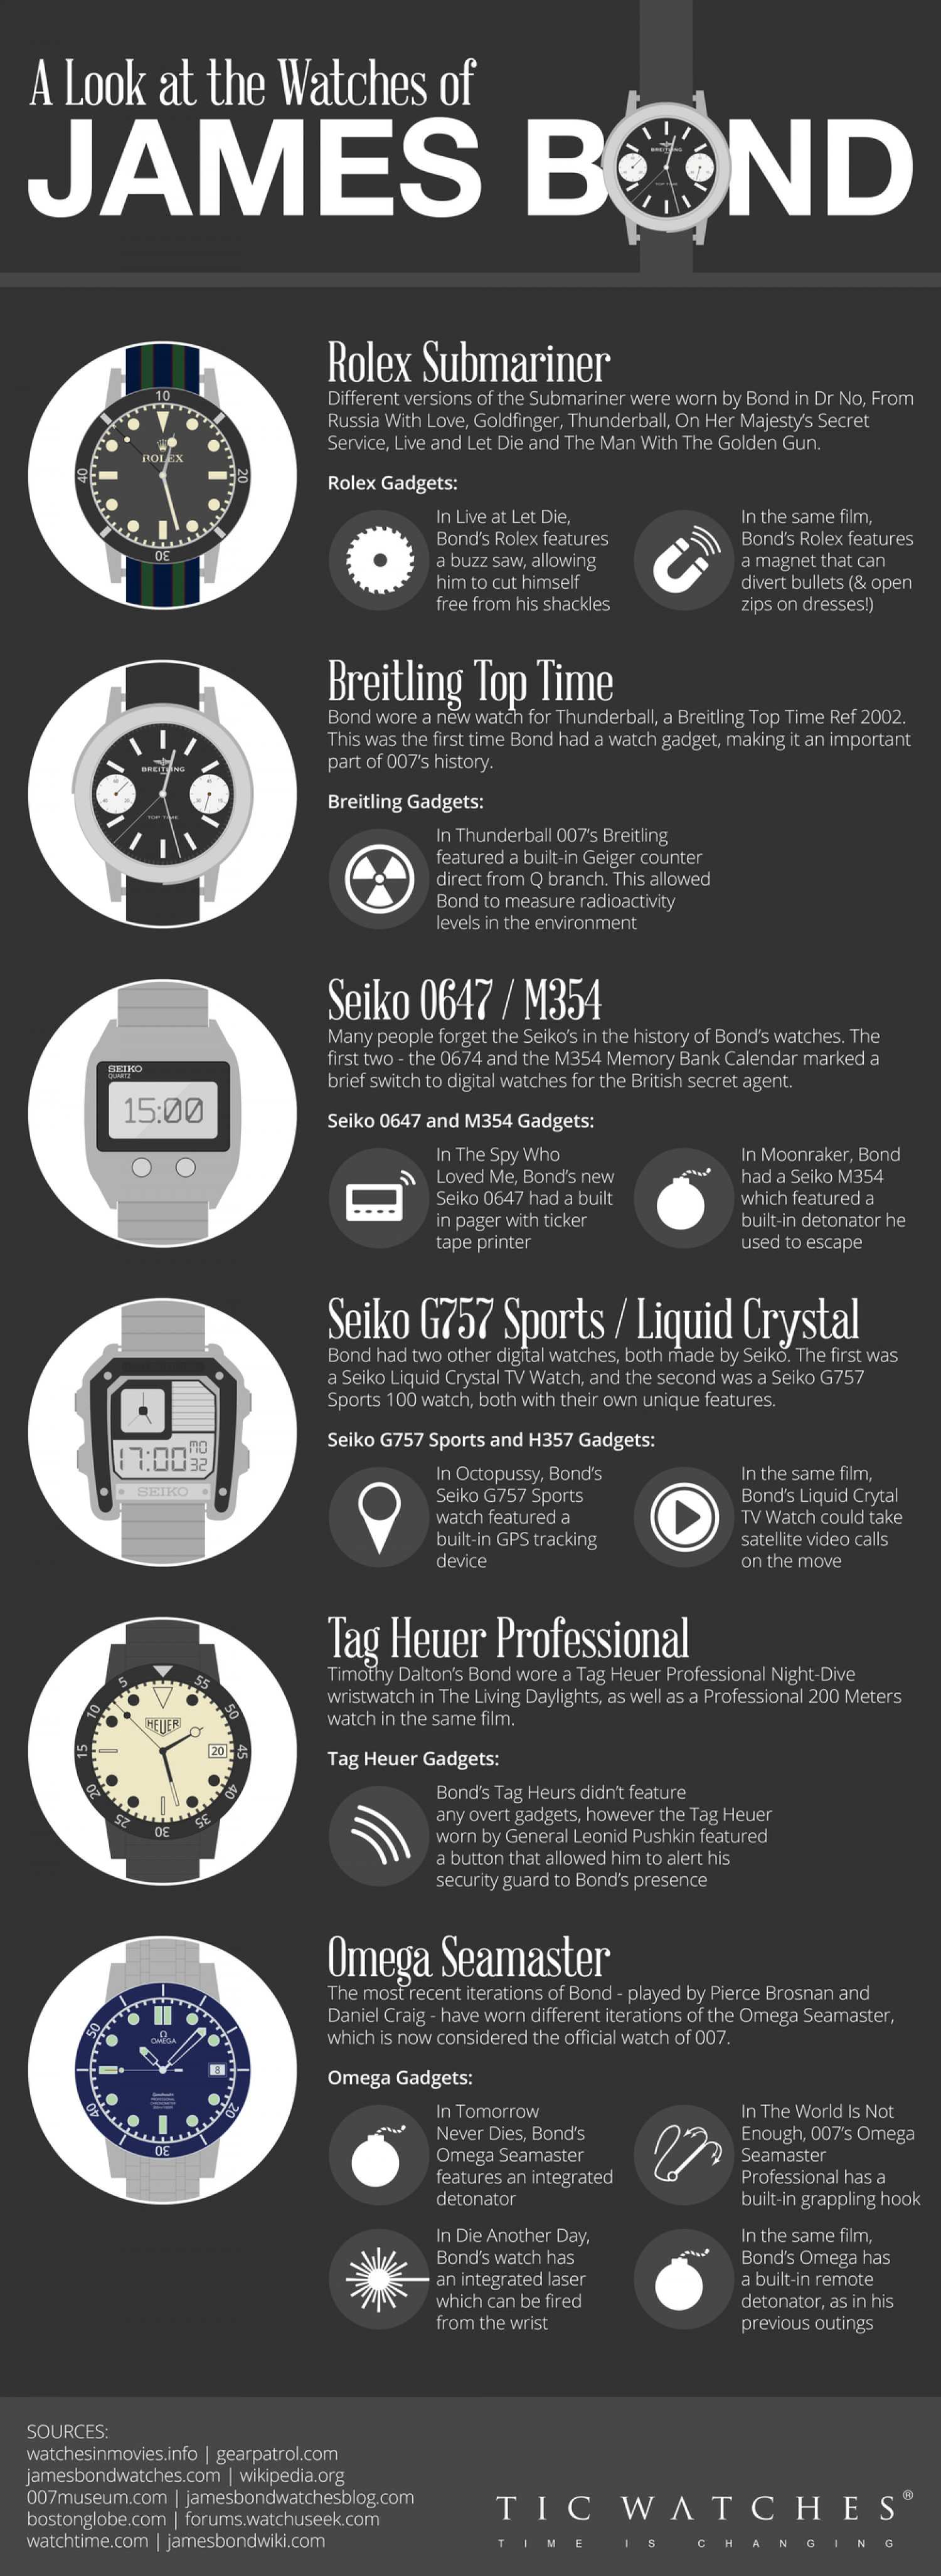 A Look at the Watches of James Bond Infographic